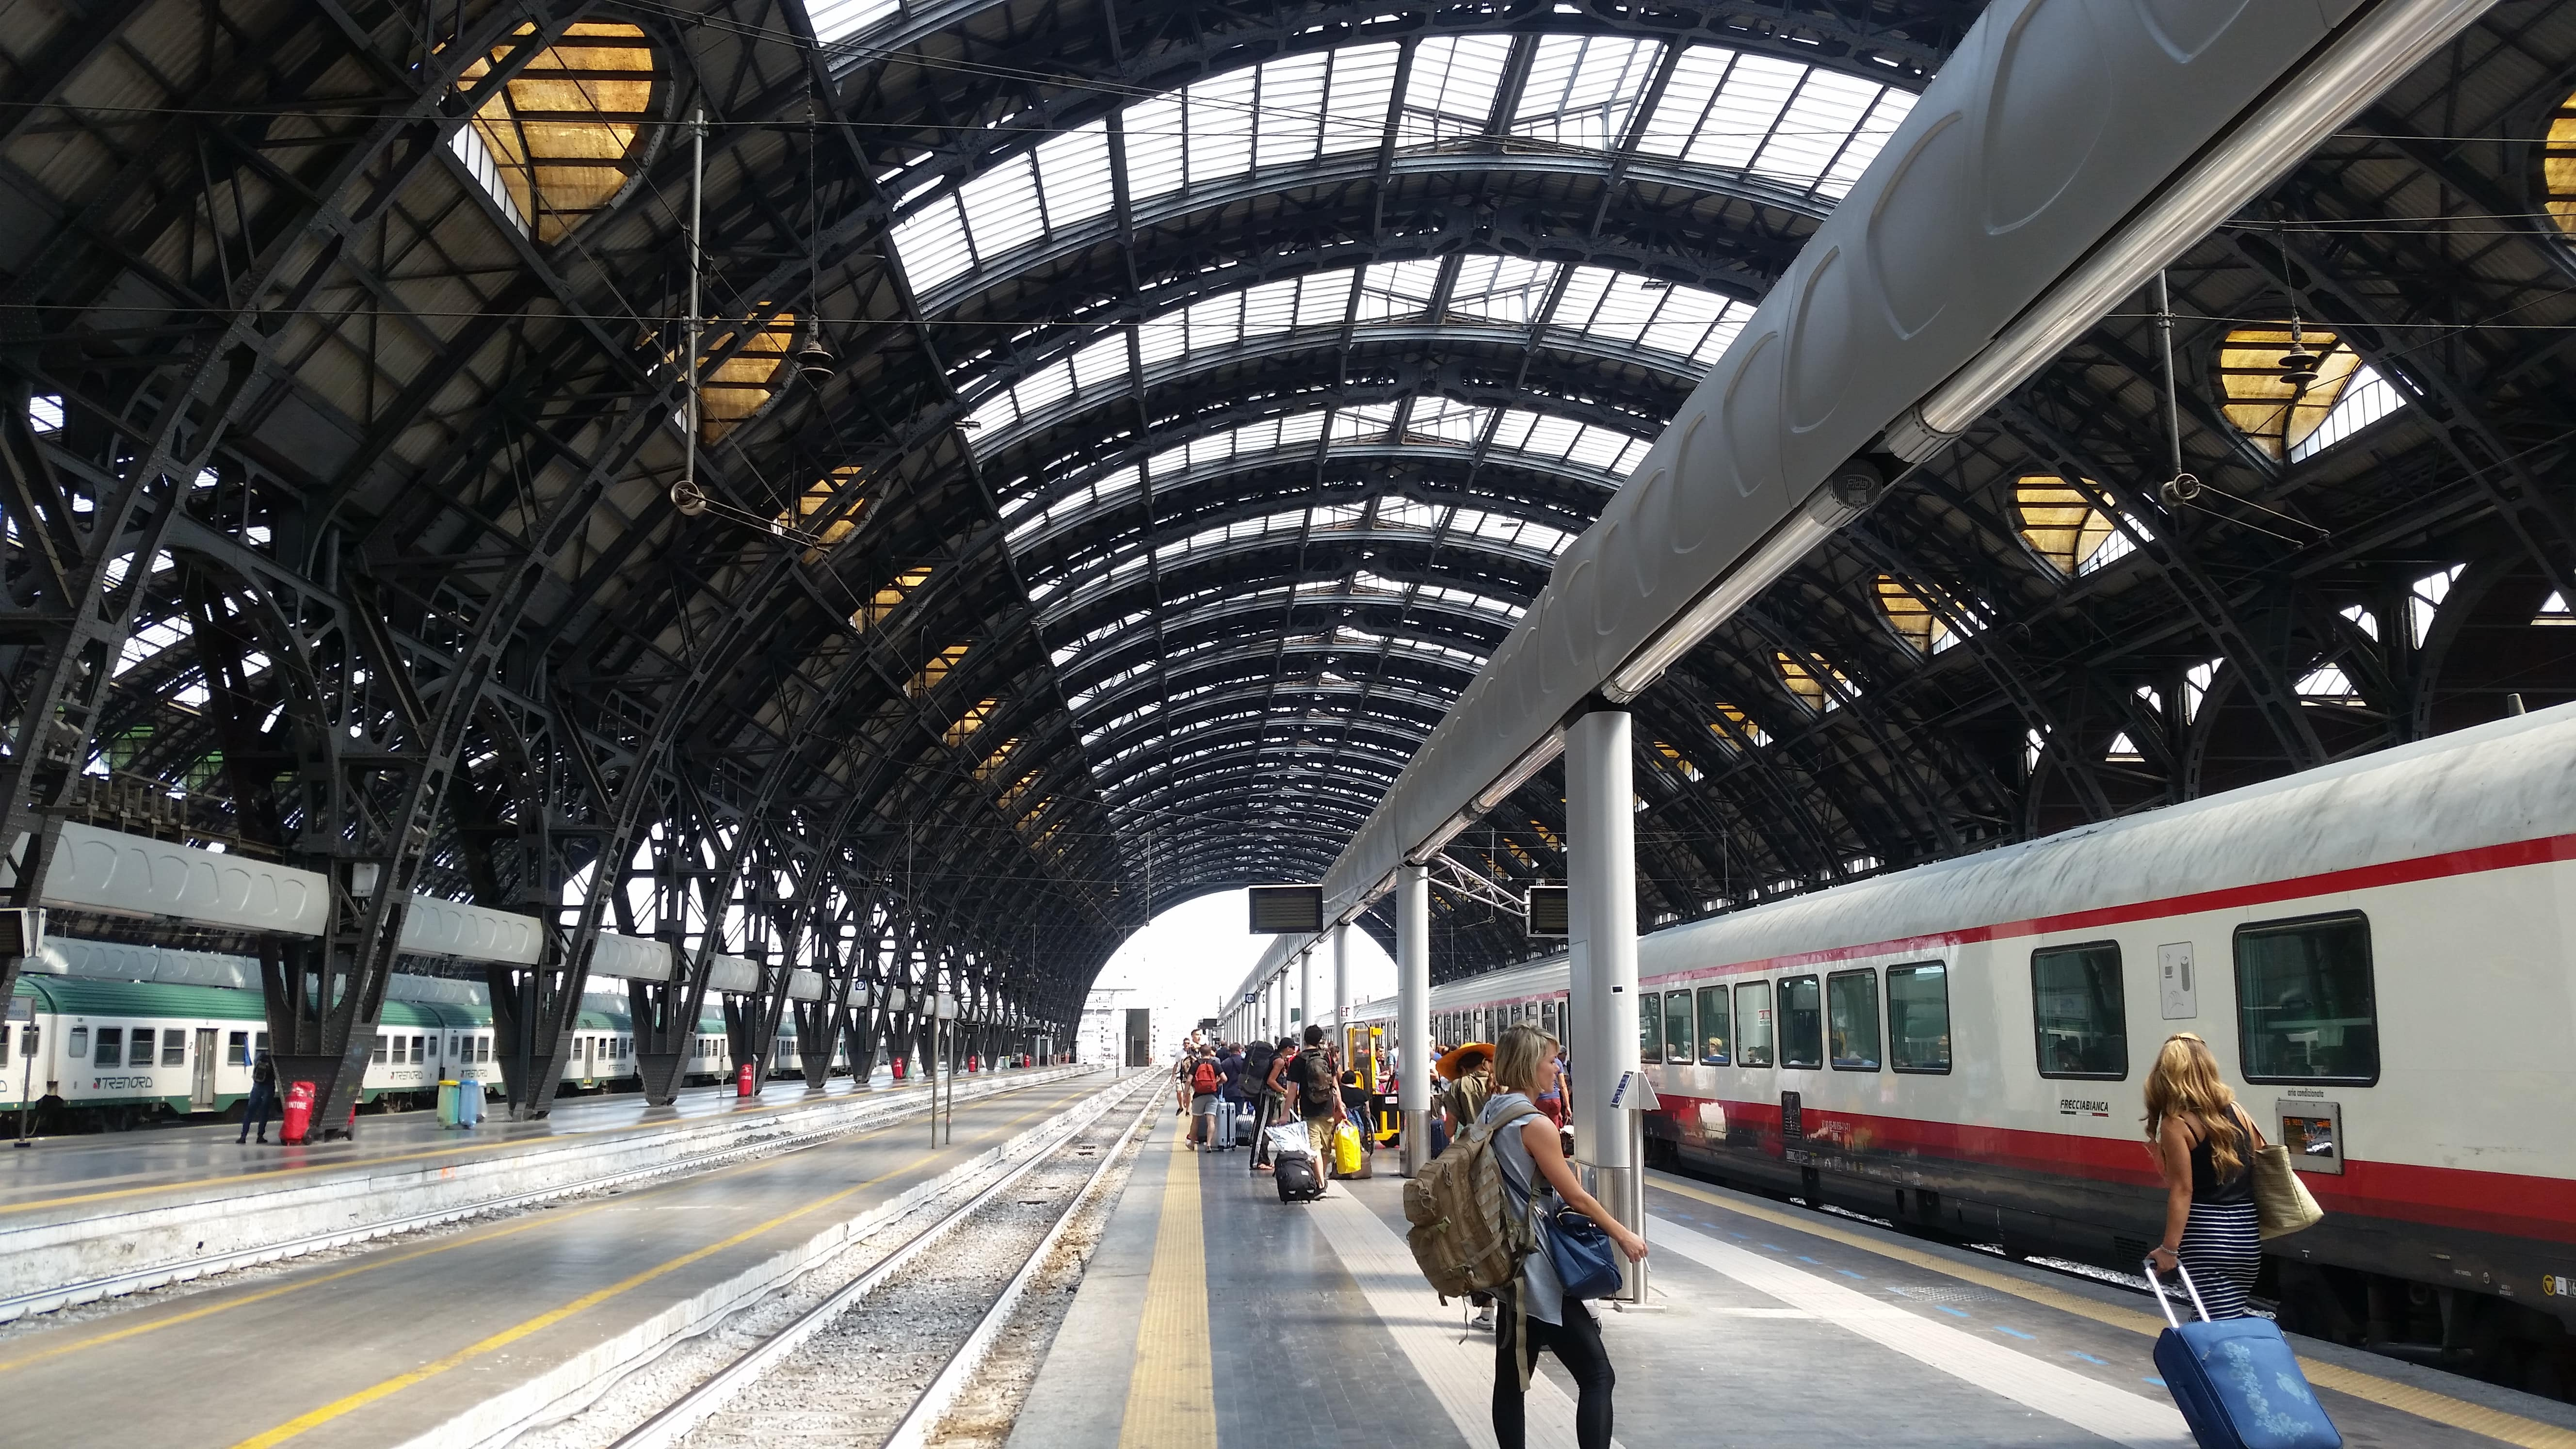 Milan train station is part of the 5 useful tips for traveling in Italy. ouritalianjourney.com